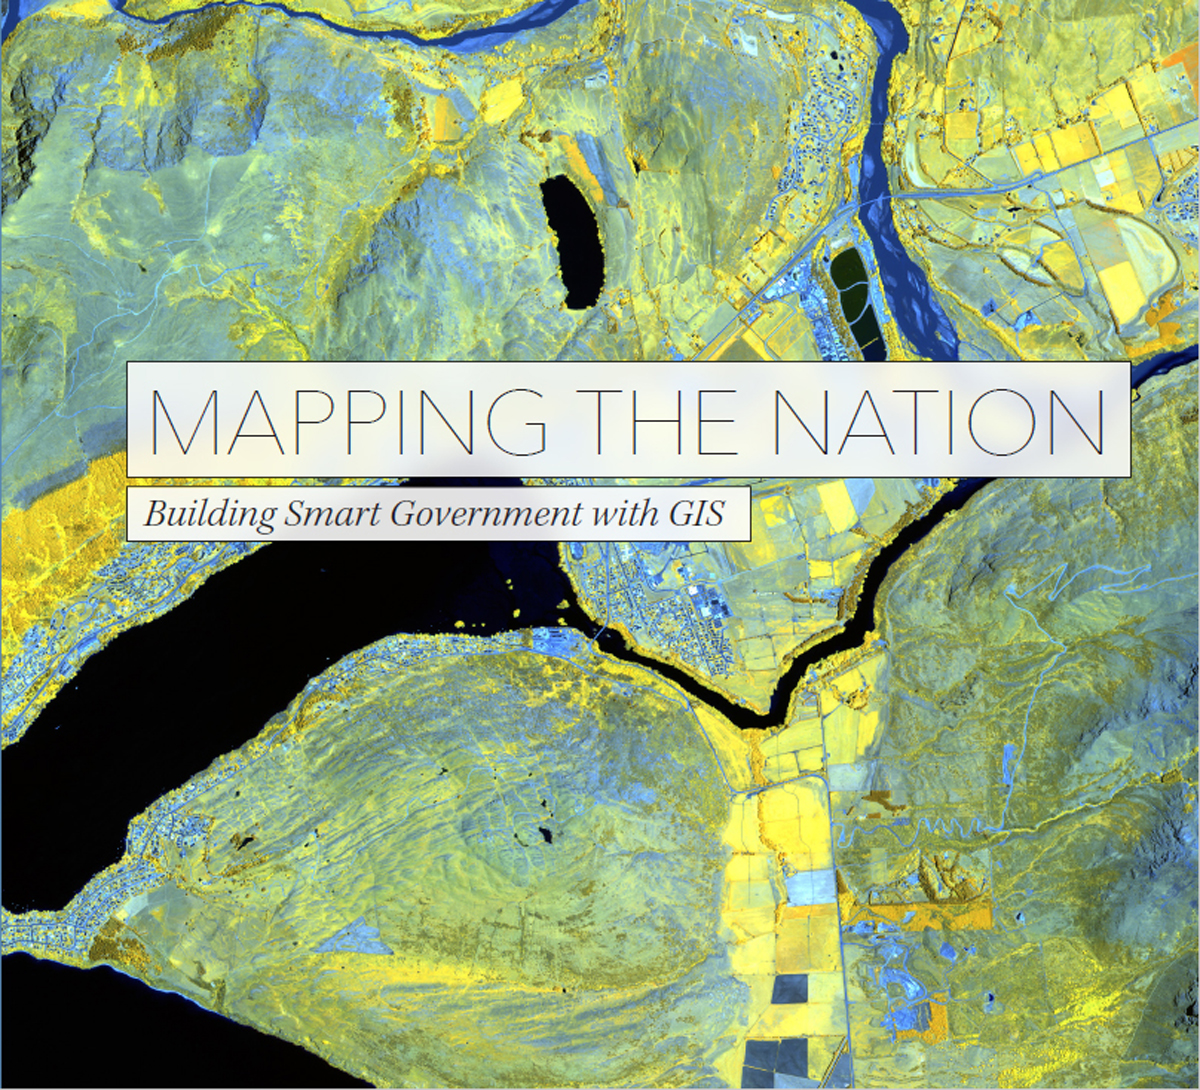 Chapters of the book are devoted to maps related to public safety, public policy, national mapping and statistics, education, health, the environment, and humanitarian work.